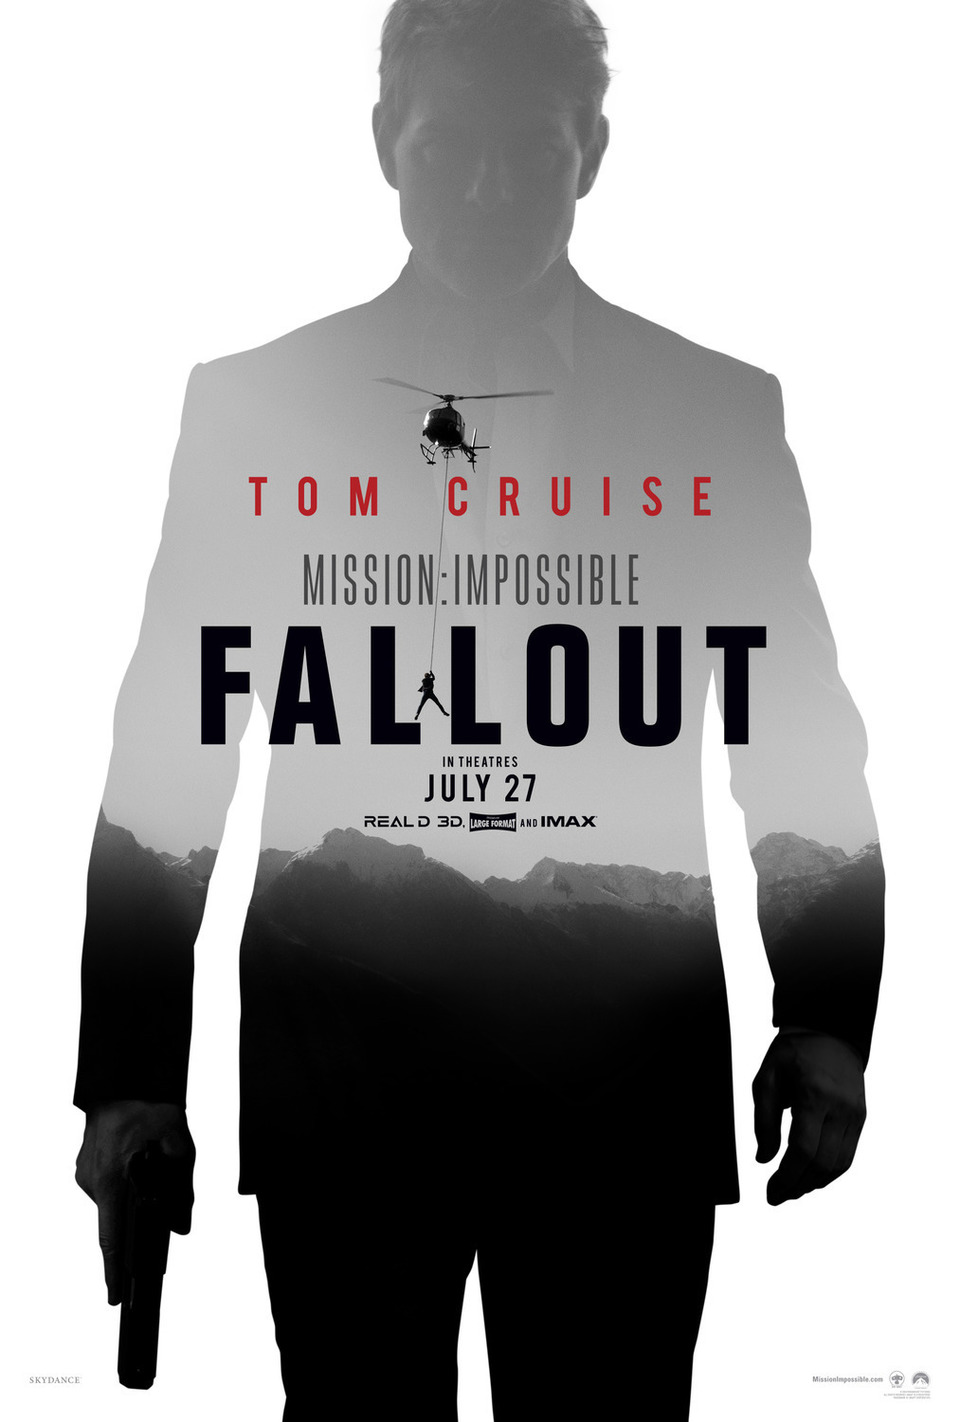 Missionimpossiblefalloutposter